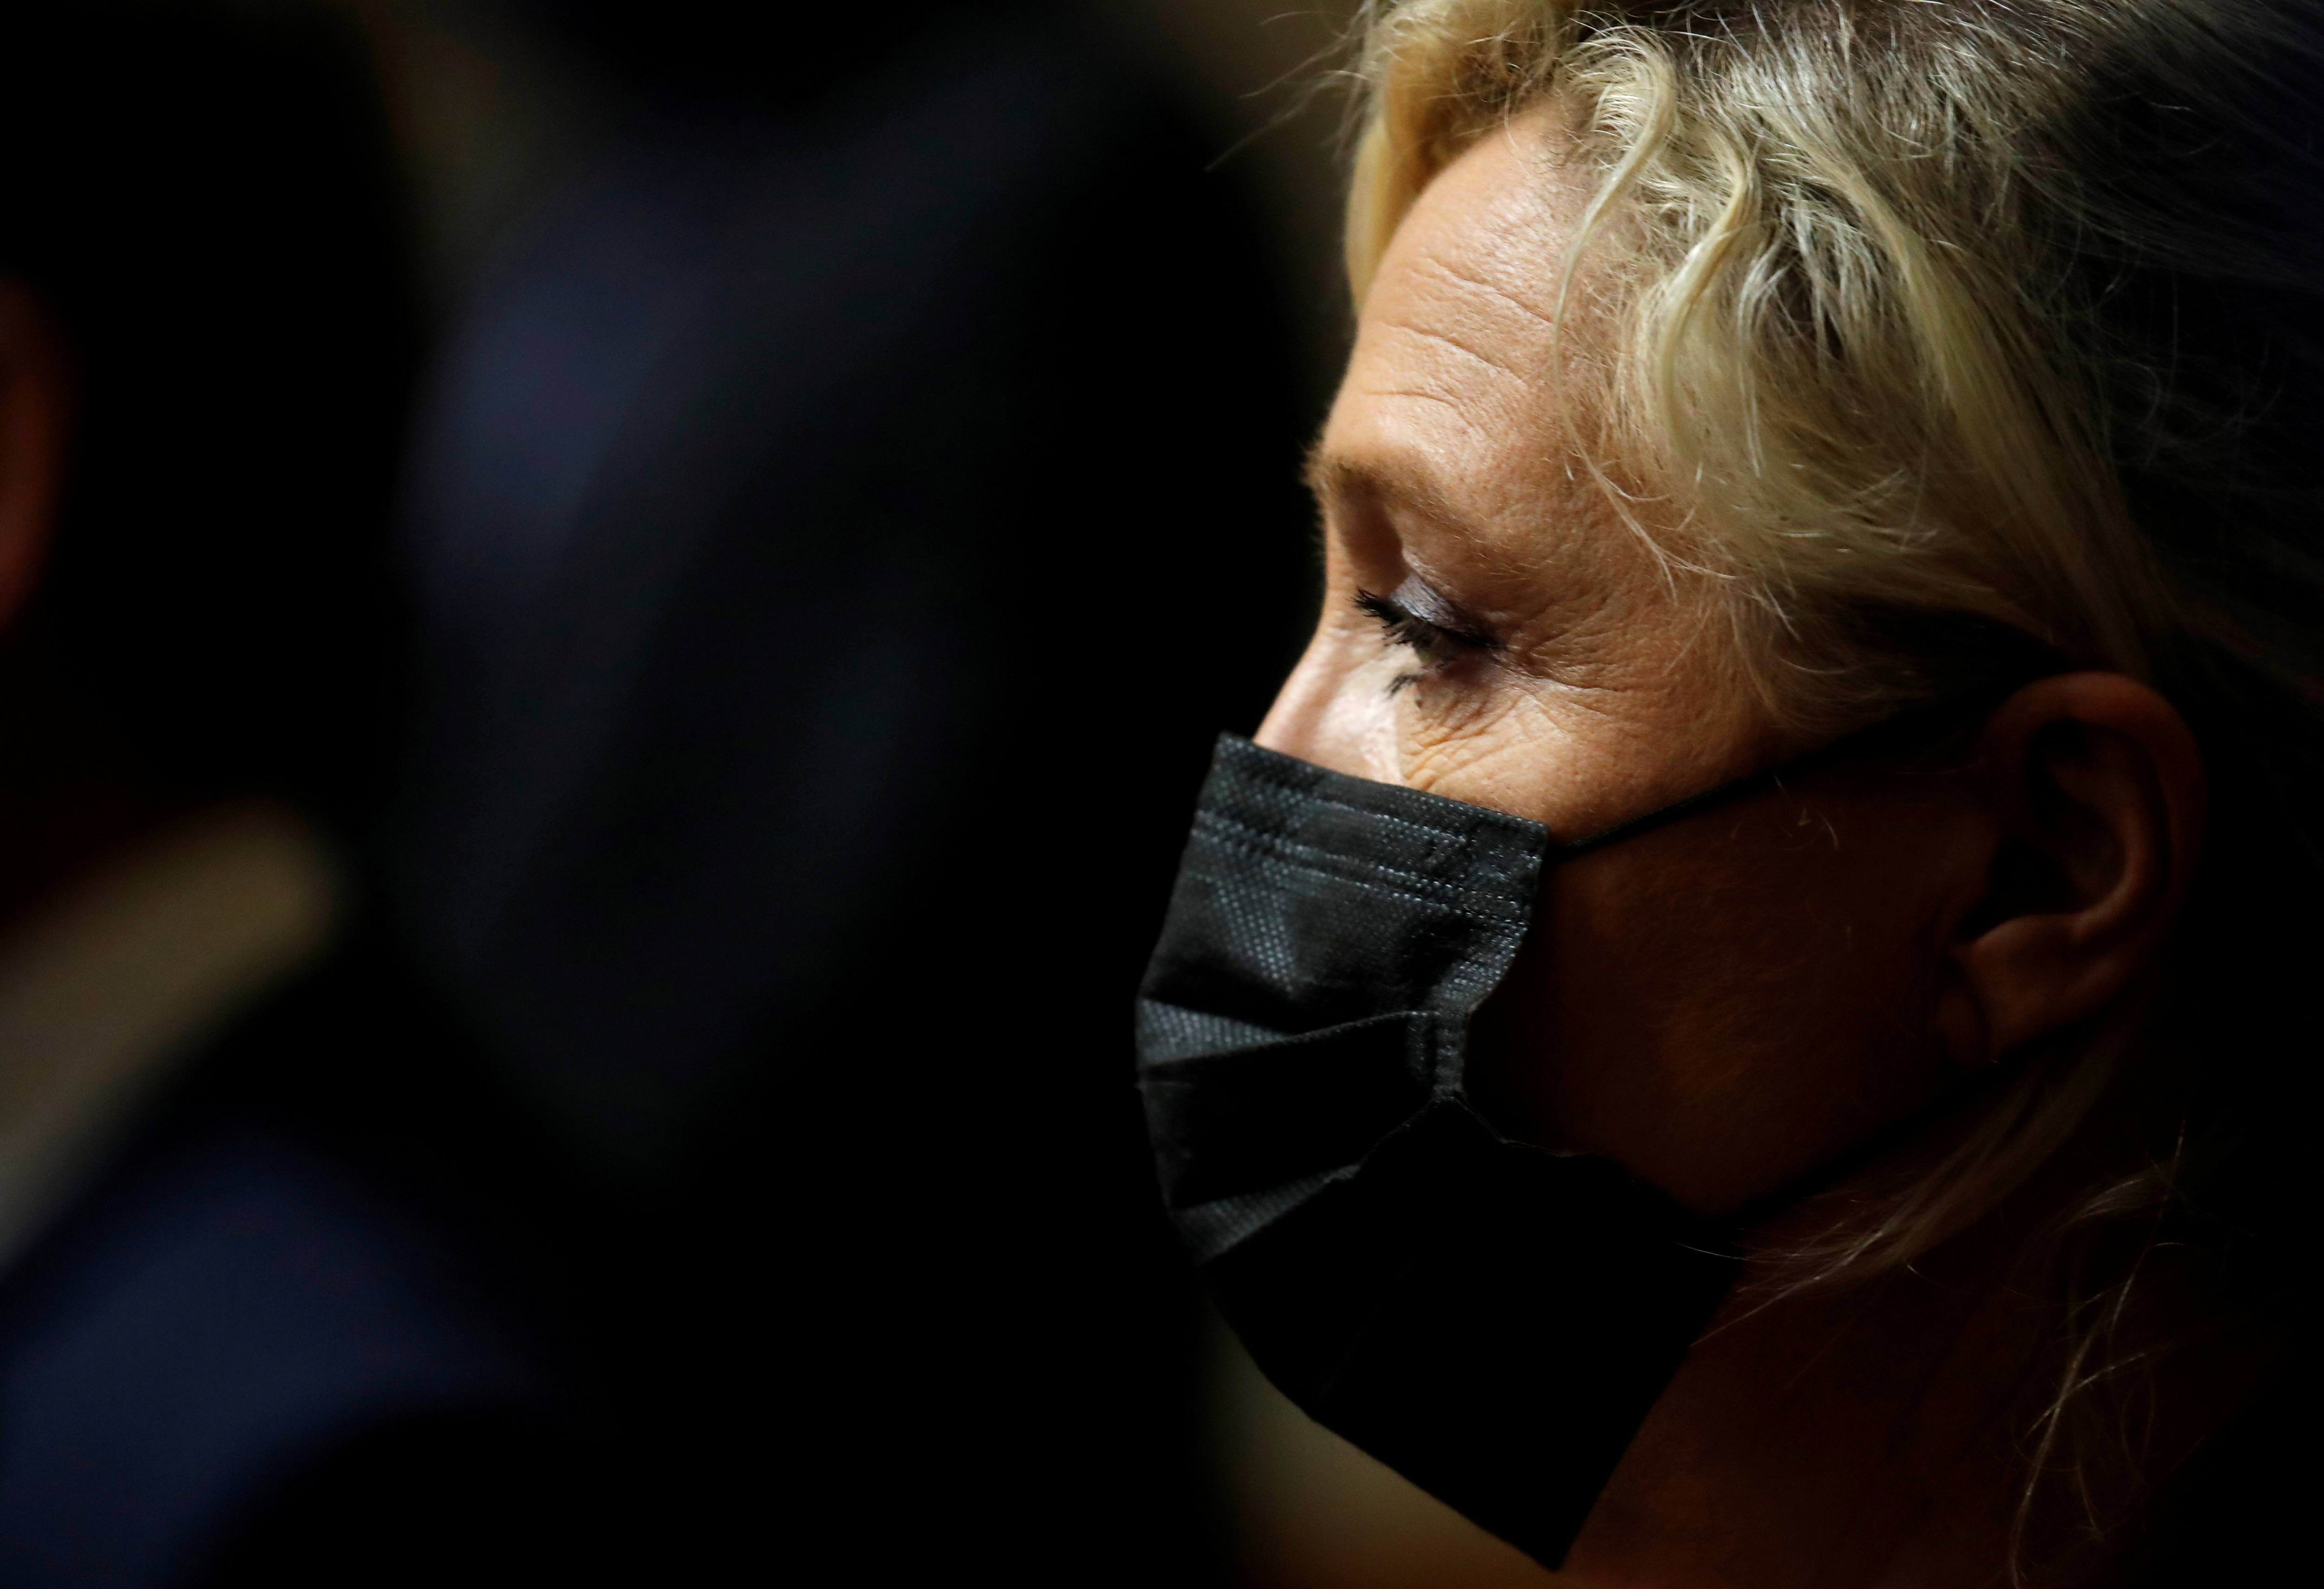 Marine Le Pen, member of parliament and leader of French far-right National Rally (Rassemblement National) party, attends a tribute to Samuel Paty, the French teacher who was beheaded on the streets of the Paris suburb of Conflans-Sainte-Honorine at the National Assembly in Paris, France, October 20, 2020. REUTERS/Gonzalo Fuentes/File Photo